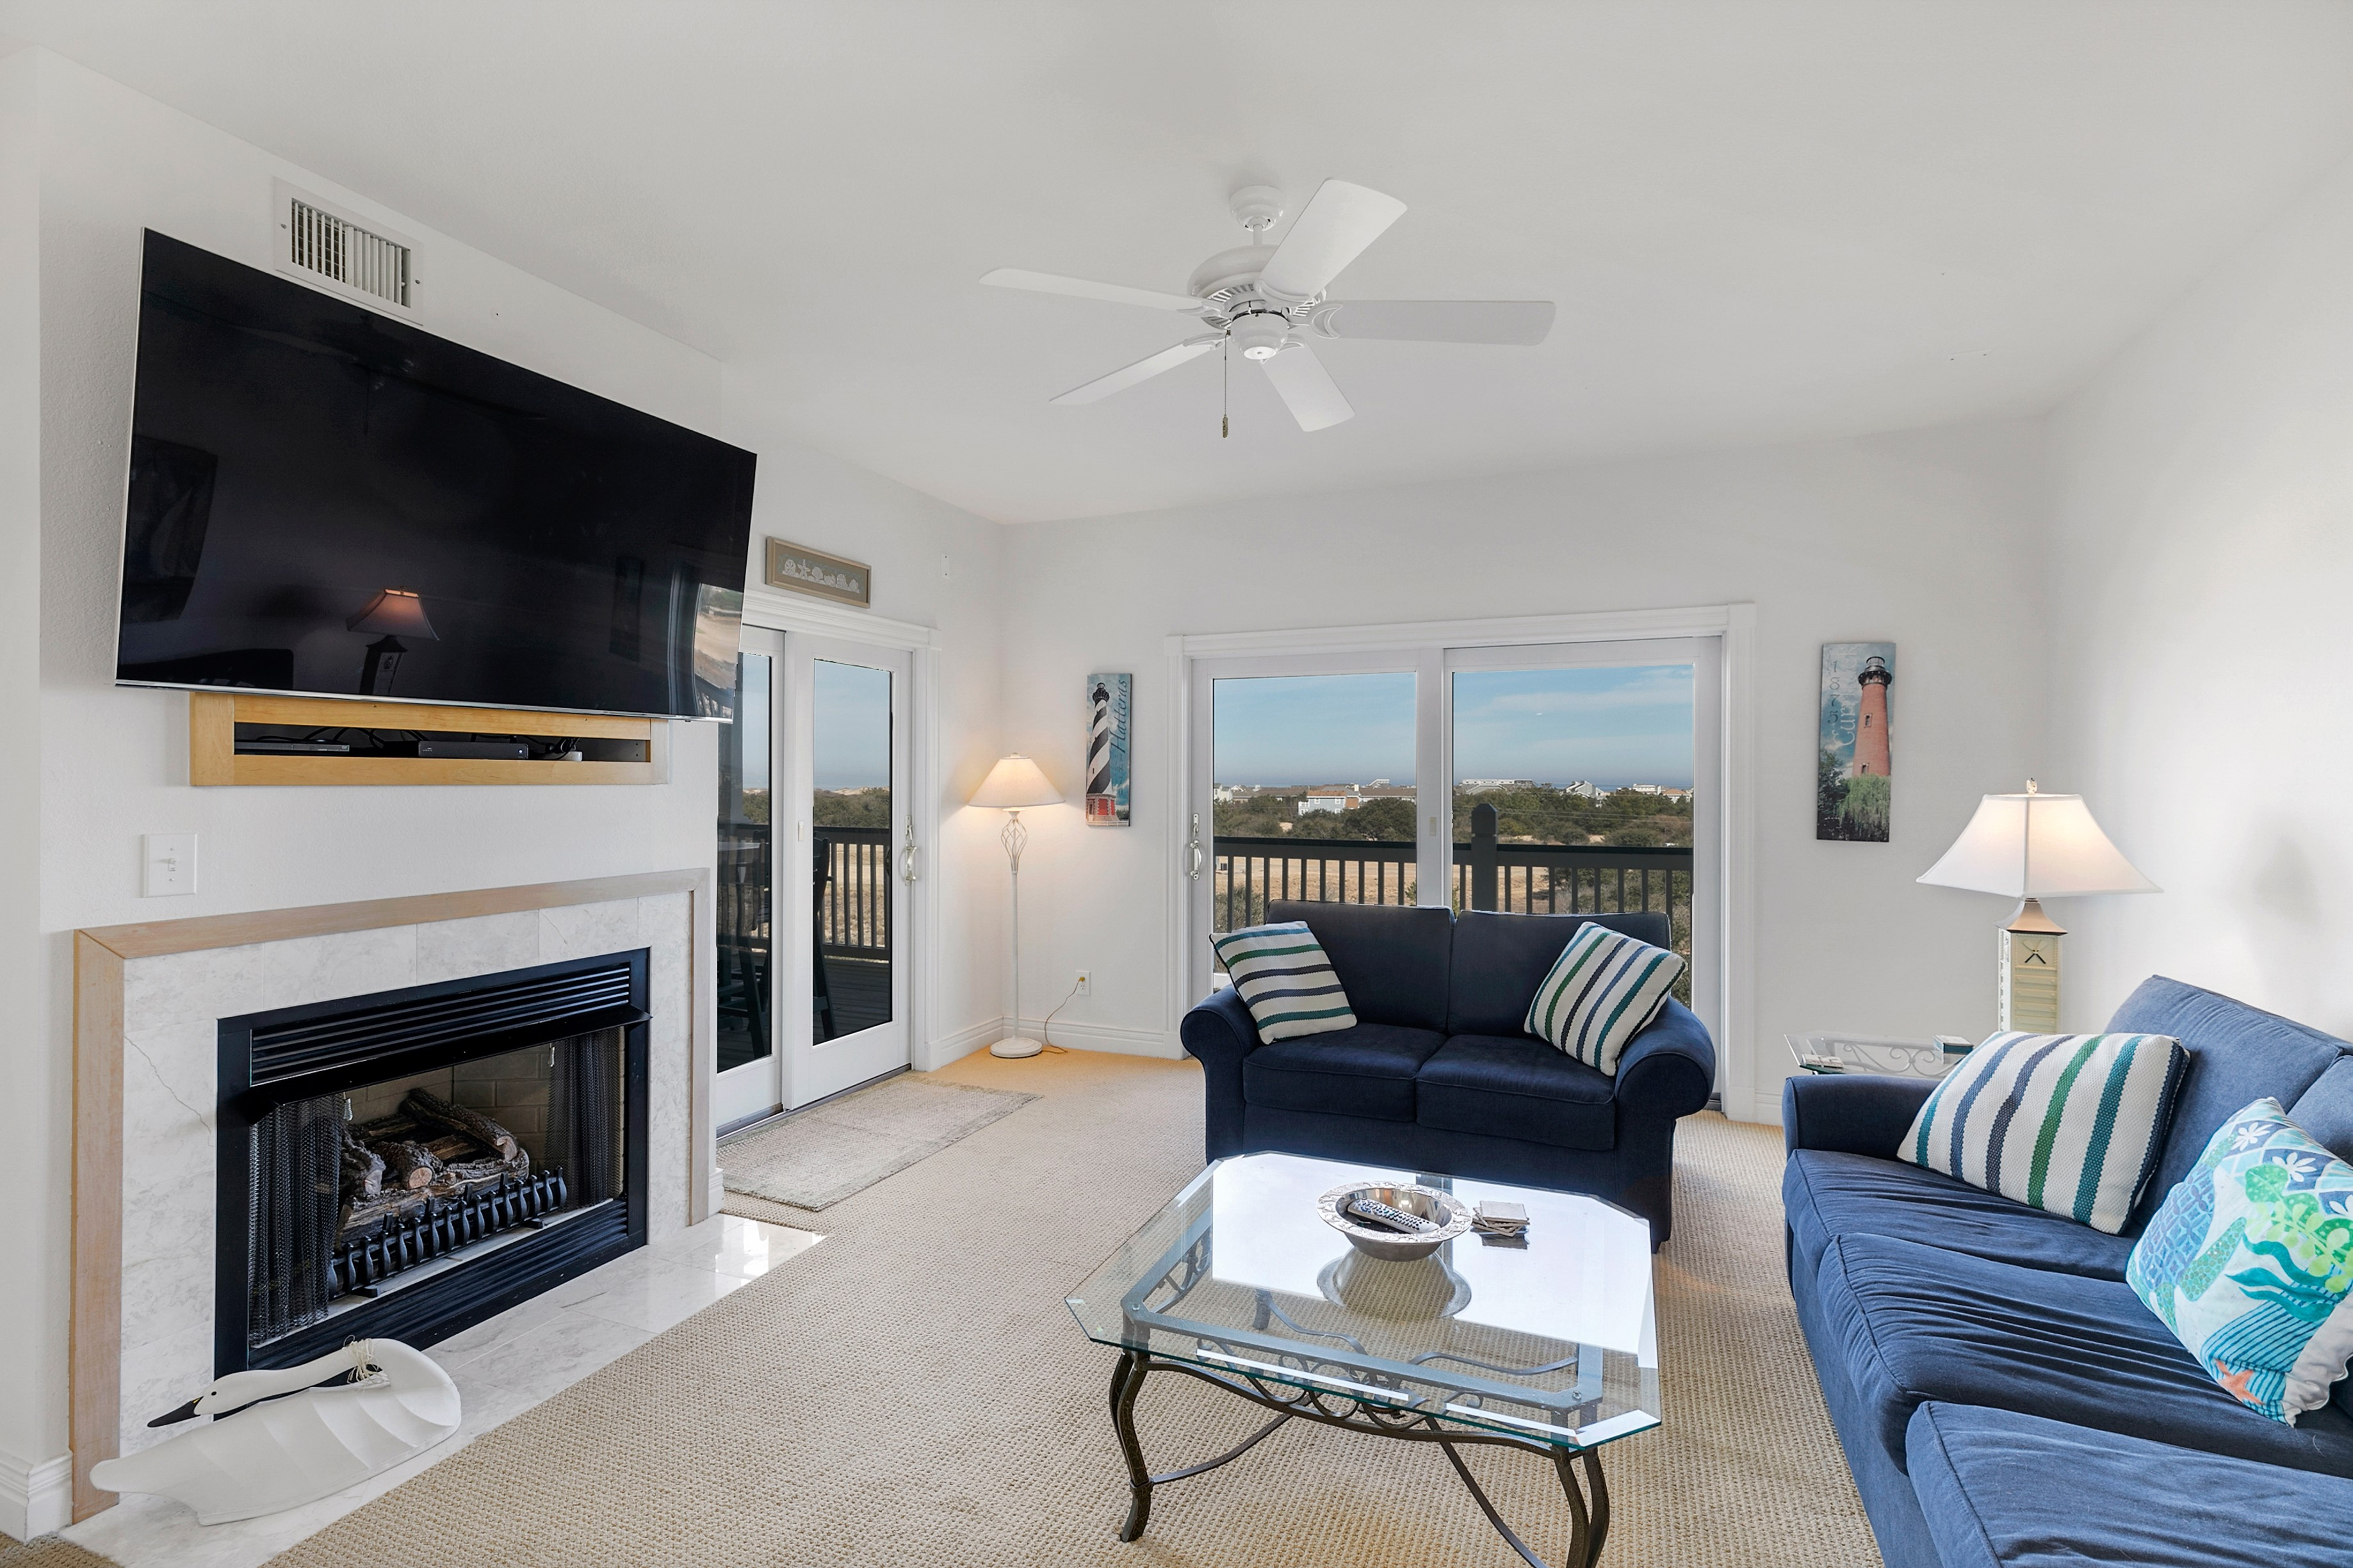 Marie's Ocean View Vacation Rental in the OBX